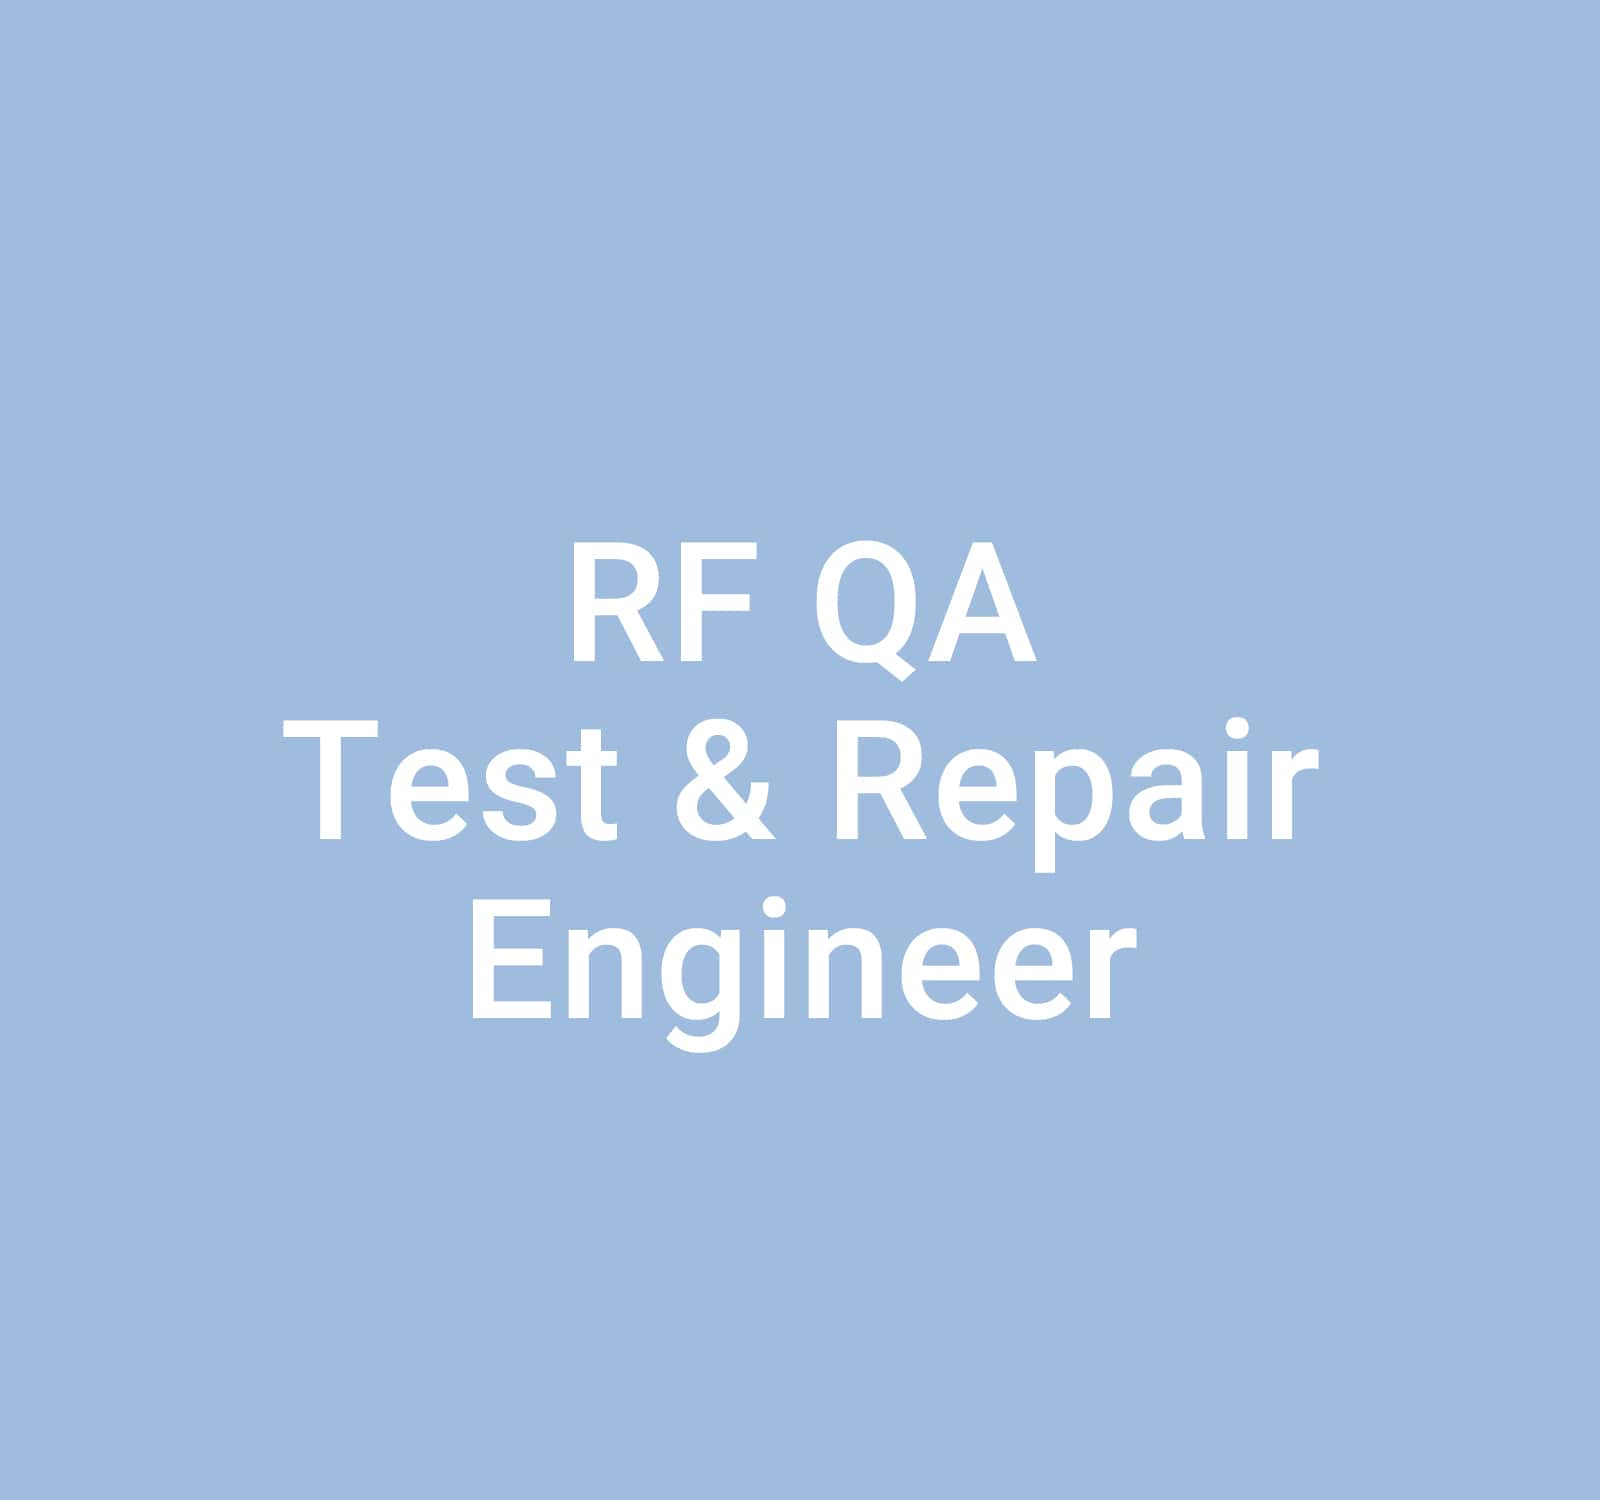 RF QA Test & Repair Engineer: